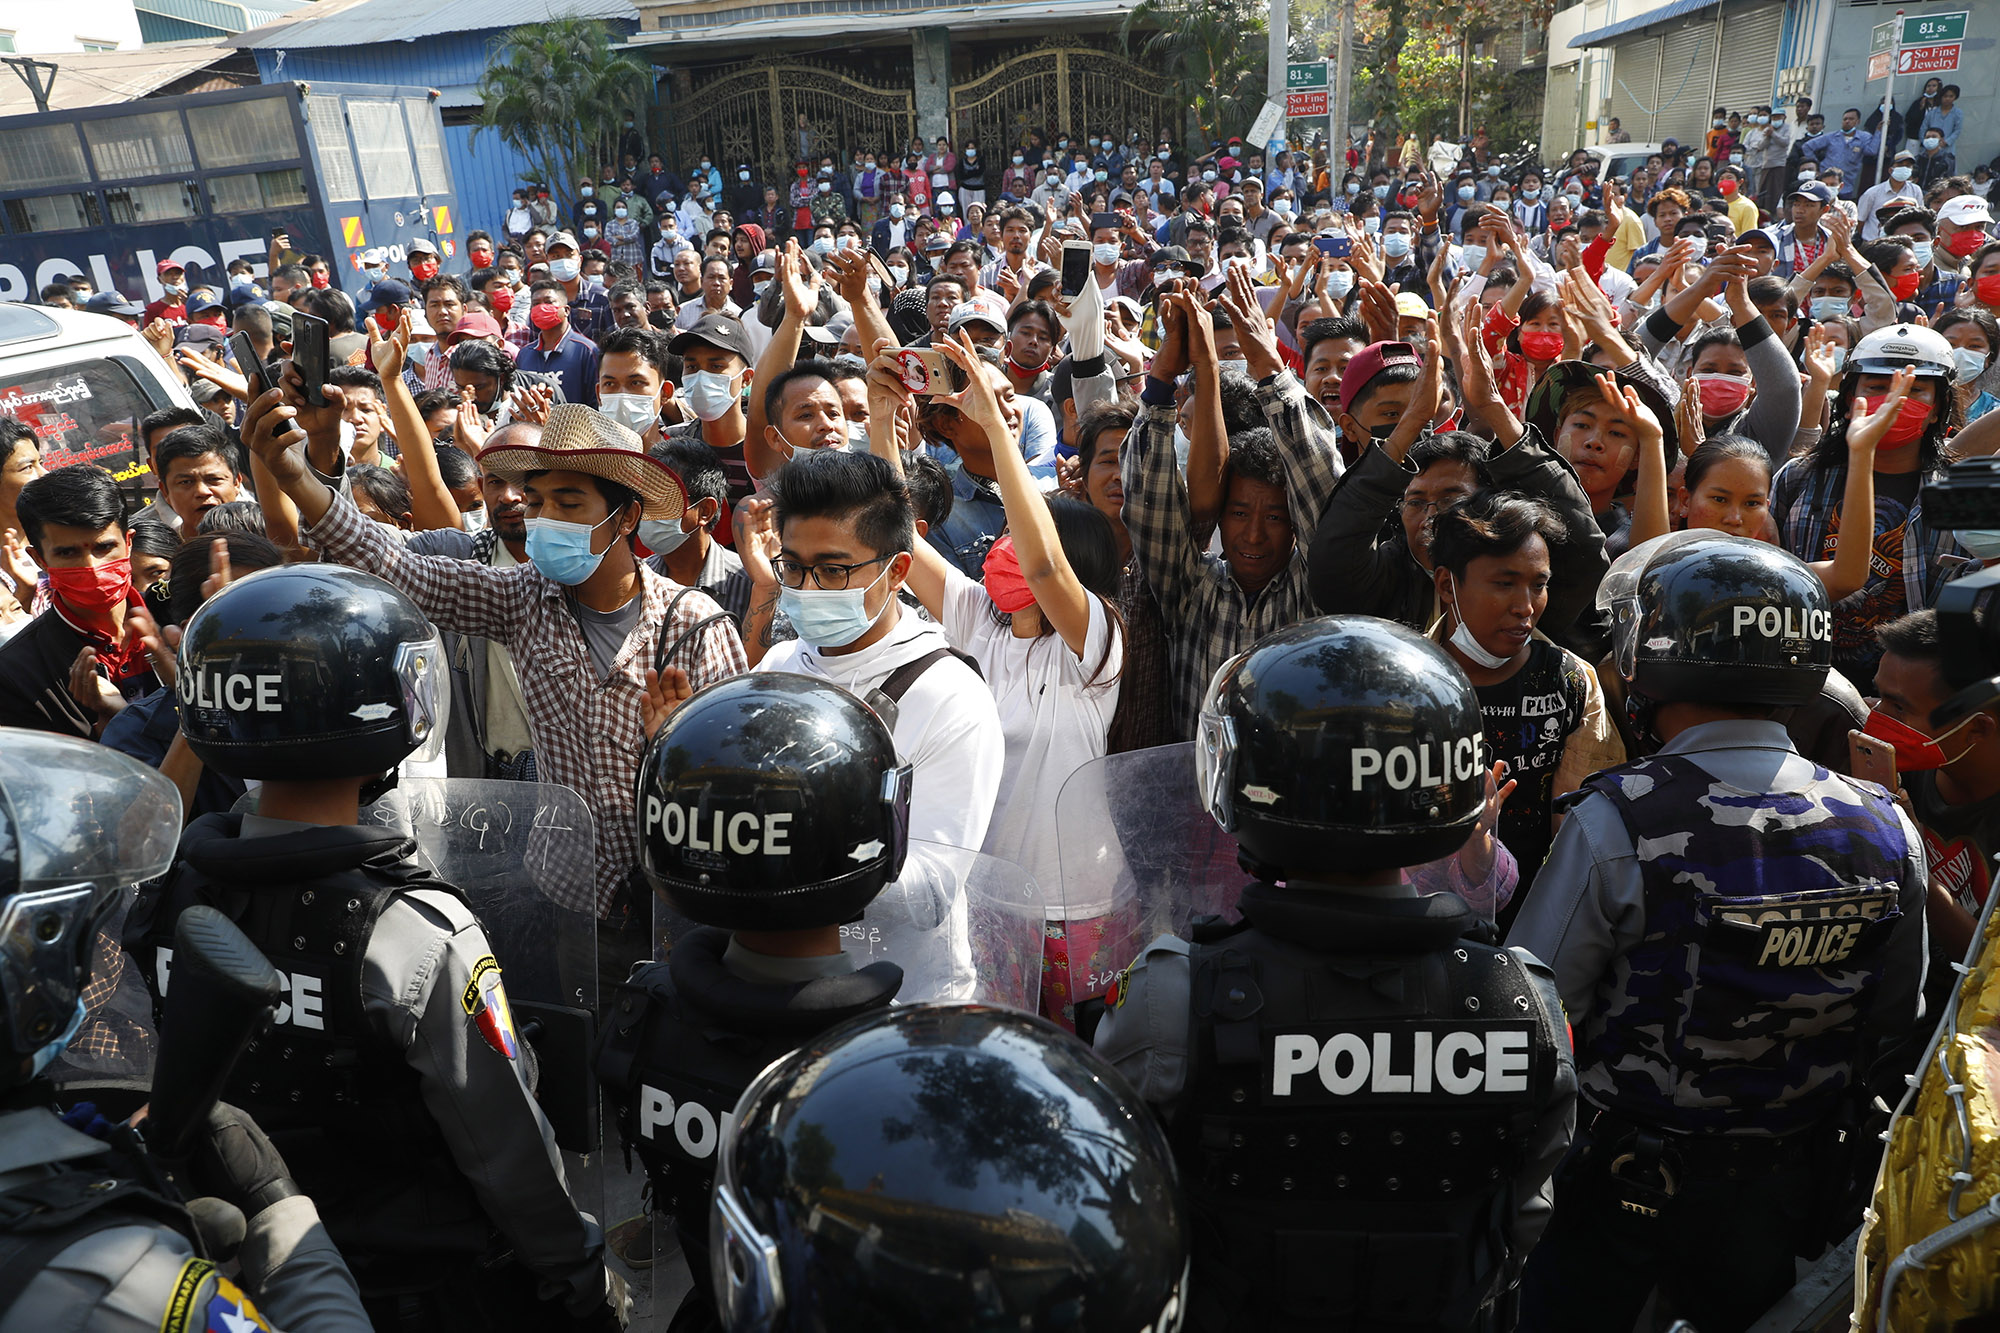 As armored military vehicles roll onto Myanmar's streets, protesters return for 10th day